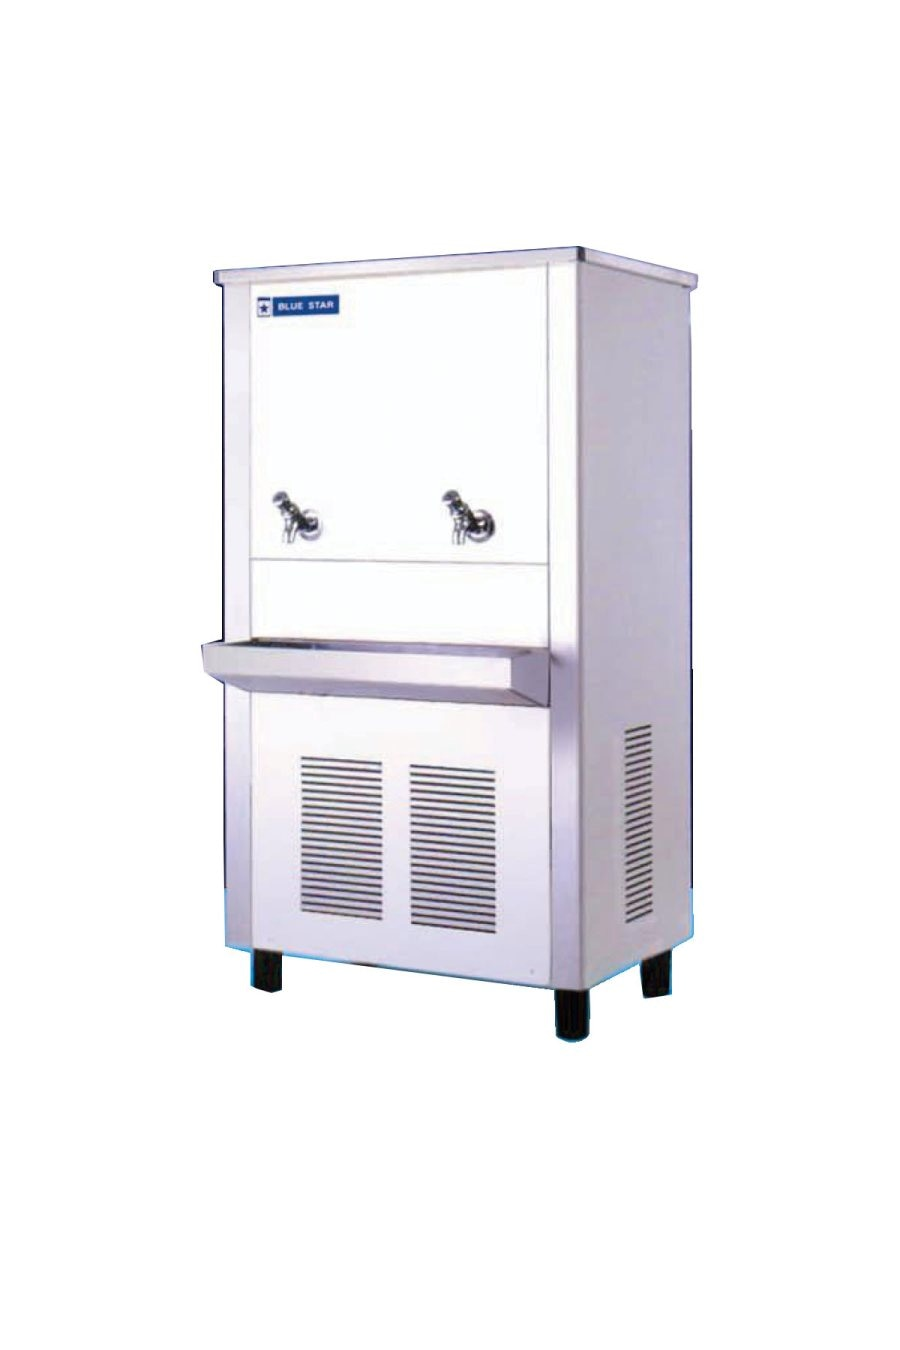 Manufacture and supply of Water cooler, Deep Freezer, Water Dispenser, Air-condition, Vertical cooler, vertical freezer, milk chiller, frost free cabinet, Cold room, Visi Cooler, Ice machine. Freeze Tech Enterprises established in 1991 Authorized dealers of Blue Star